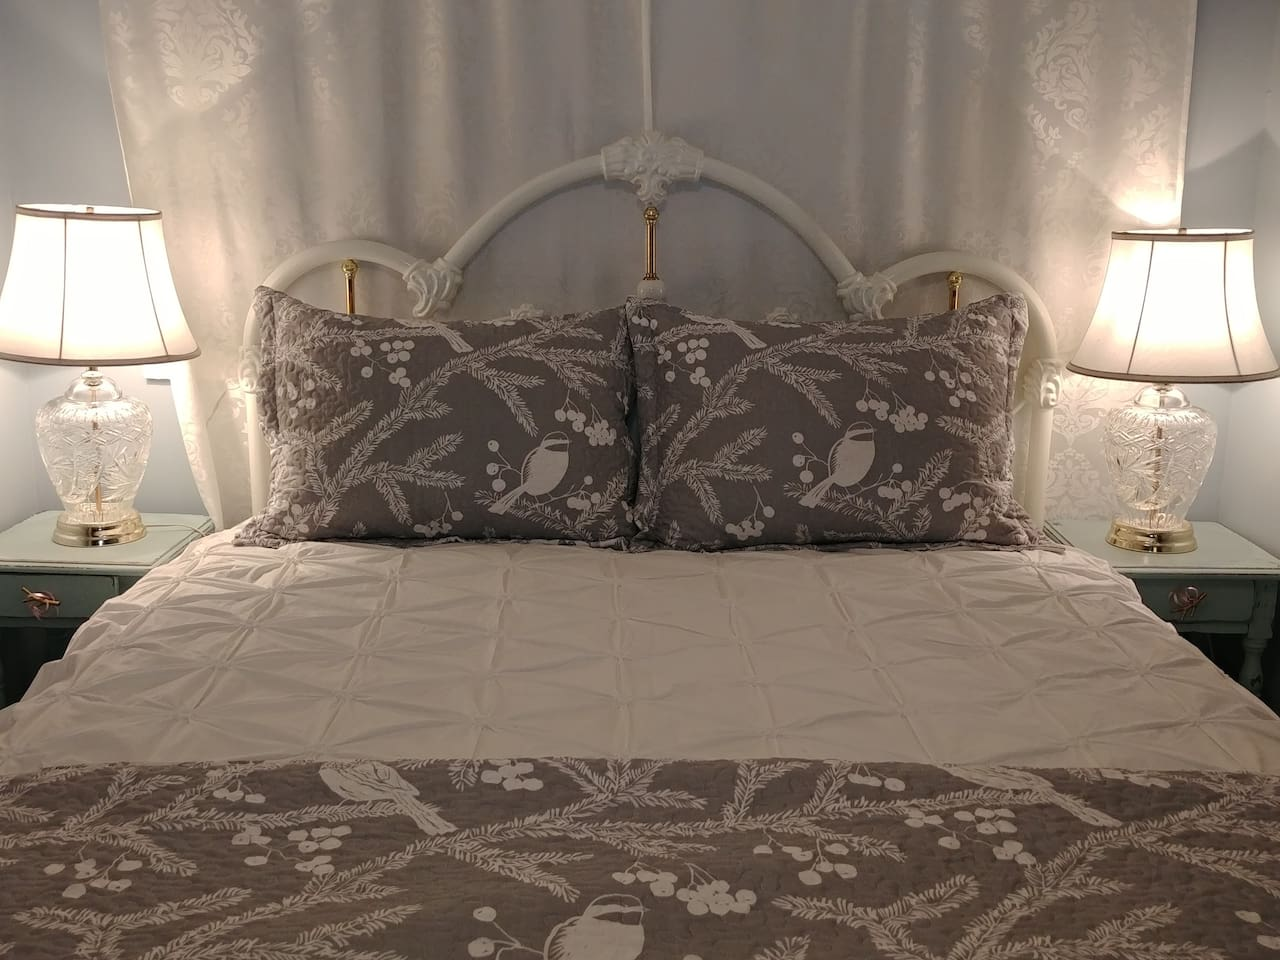 Bedspread theme: Birds on Snowy Branches. This bed is in the cozy bedroom with an antique wardrobe